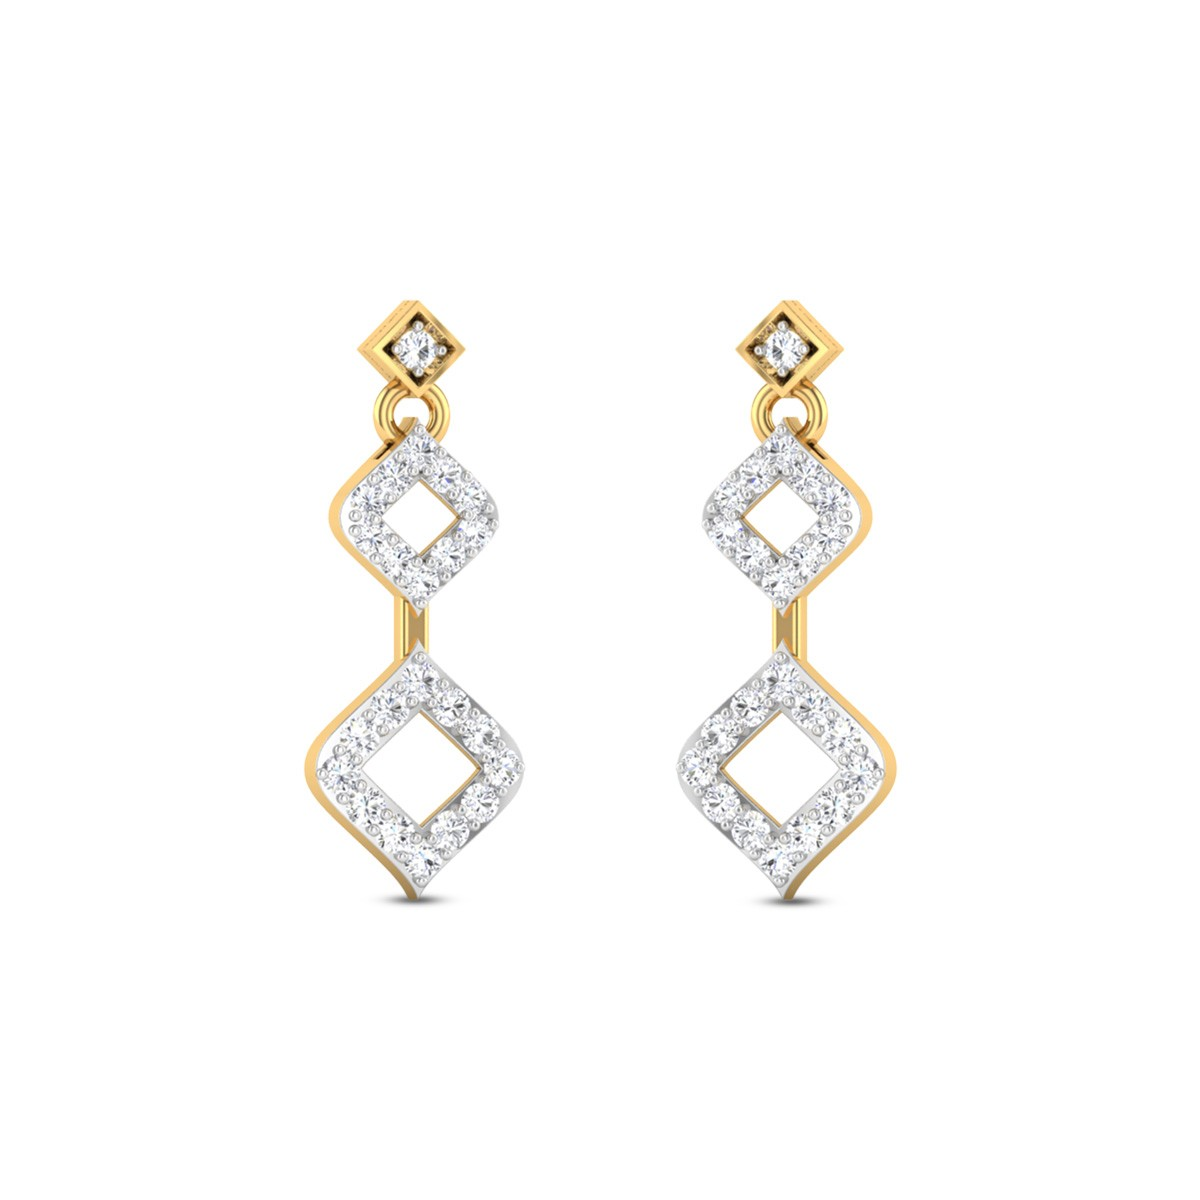 Pedrina Diamond Earrings